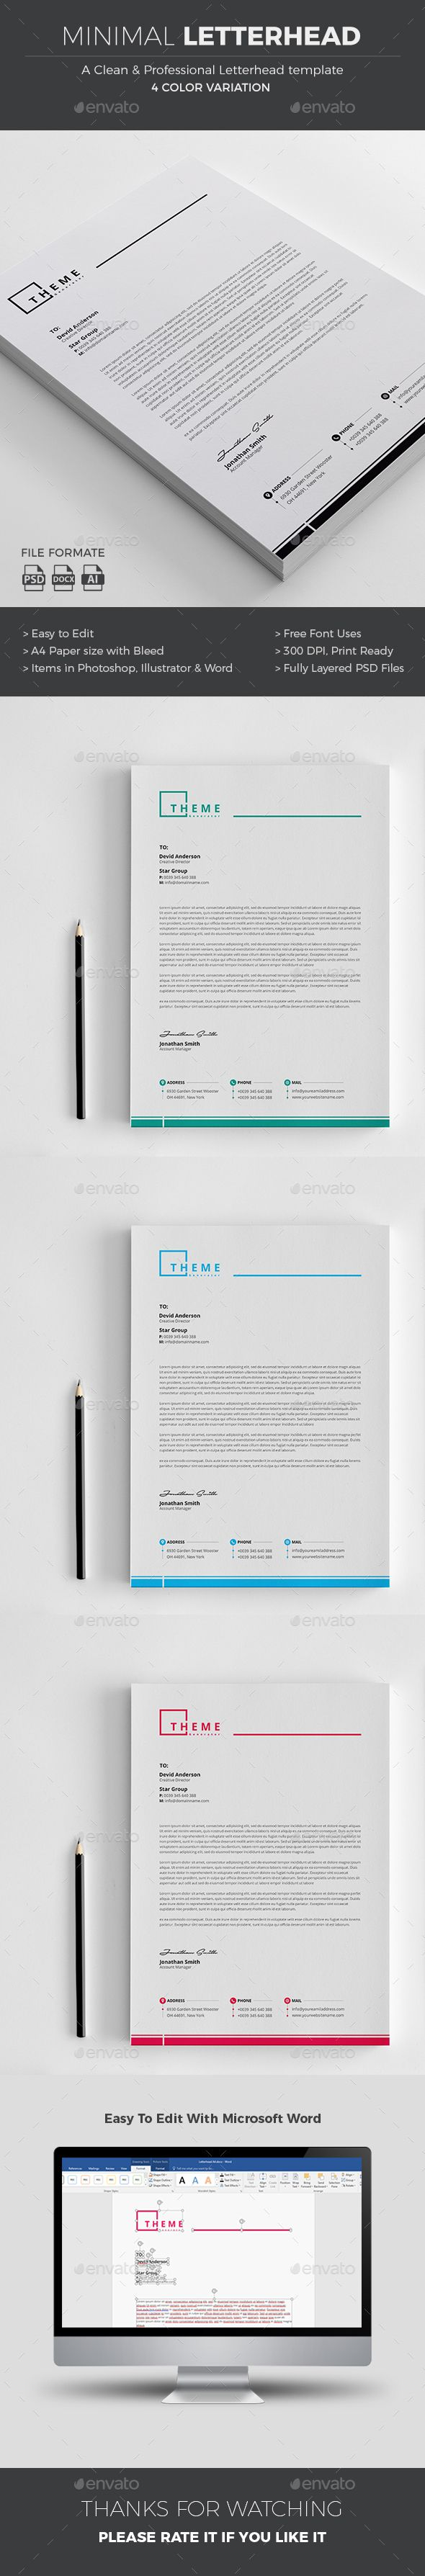 Professional Letterhead Templates Interesting 232 Best Letterhead Design Images On Pinterest  Print Templates .